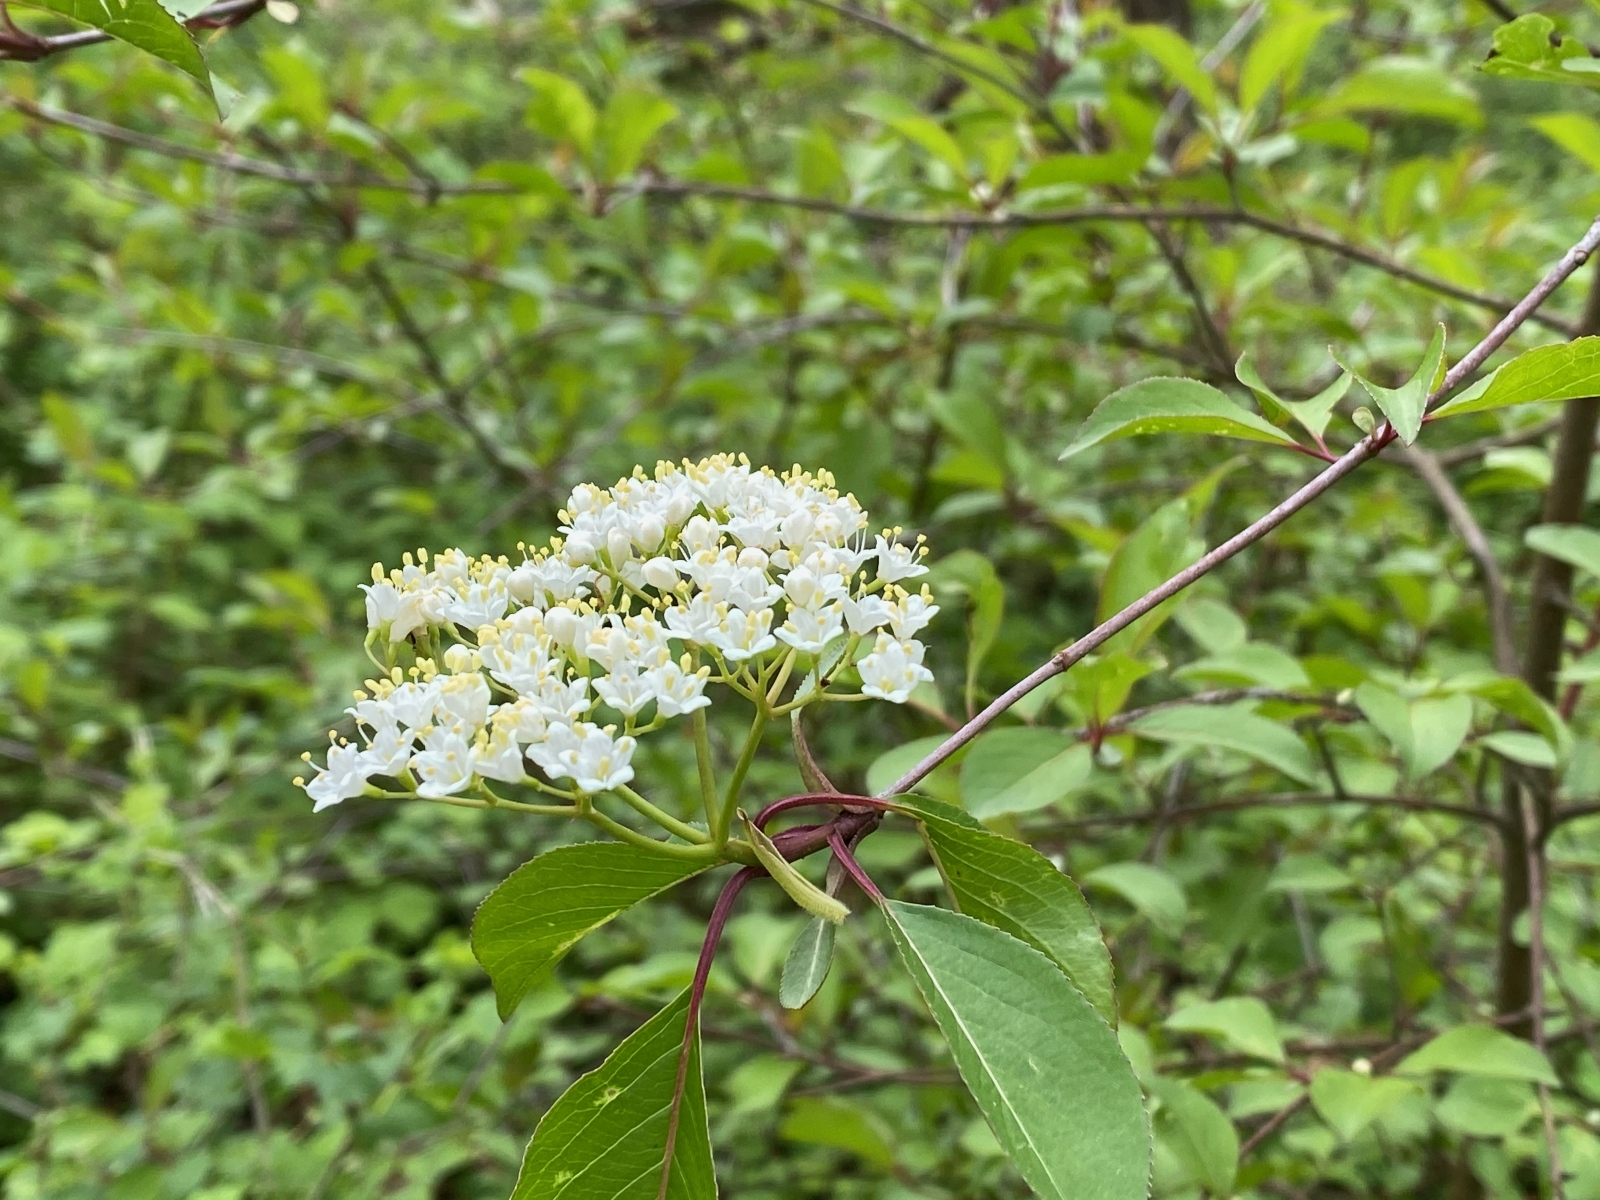 Blackhaw viburnum bloom